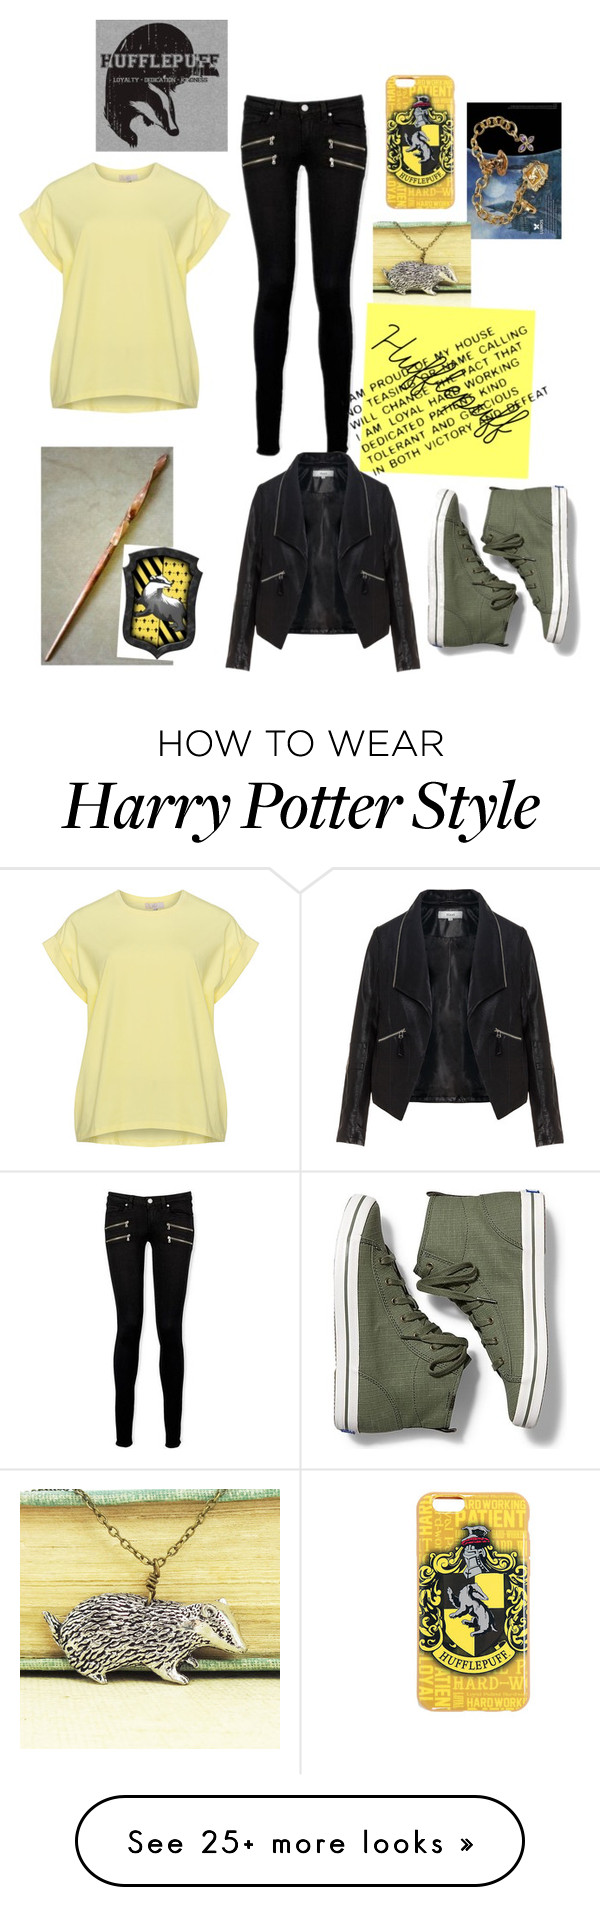 """""""Hufflepuff"""" by booandsadie on Polyvore featuring Paige Denim, Zizzi and Keds"""